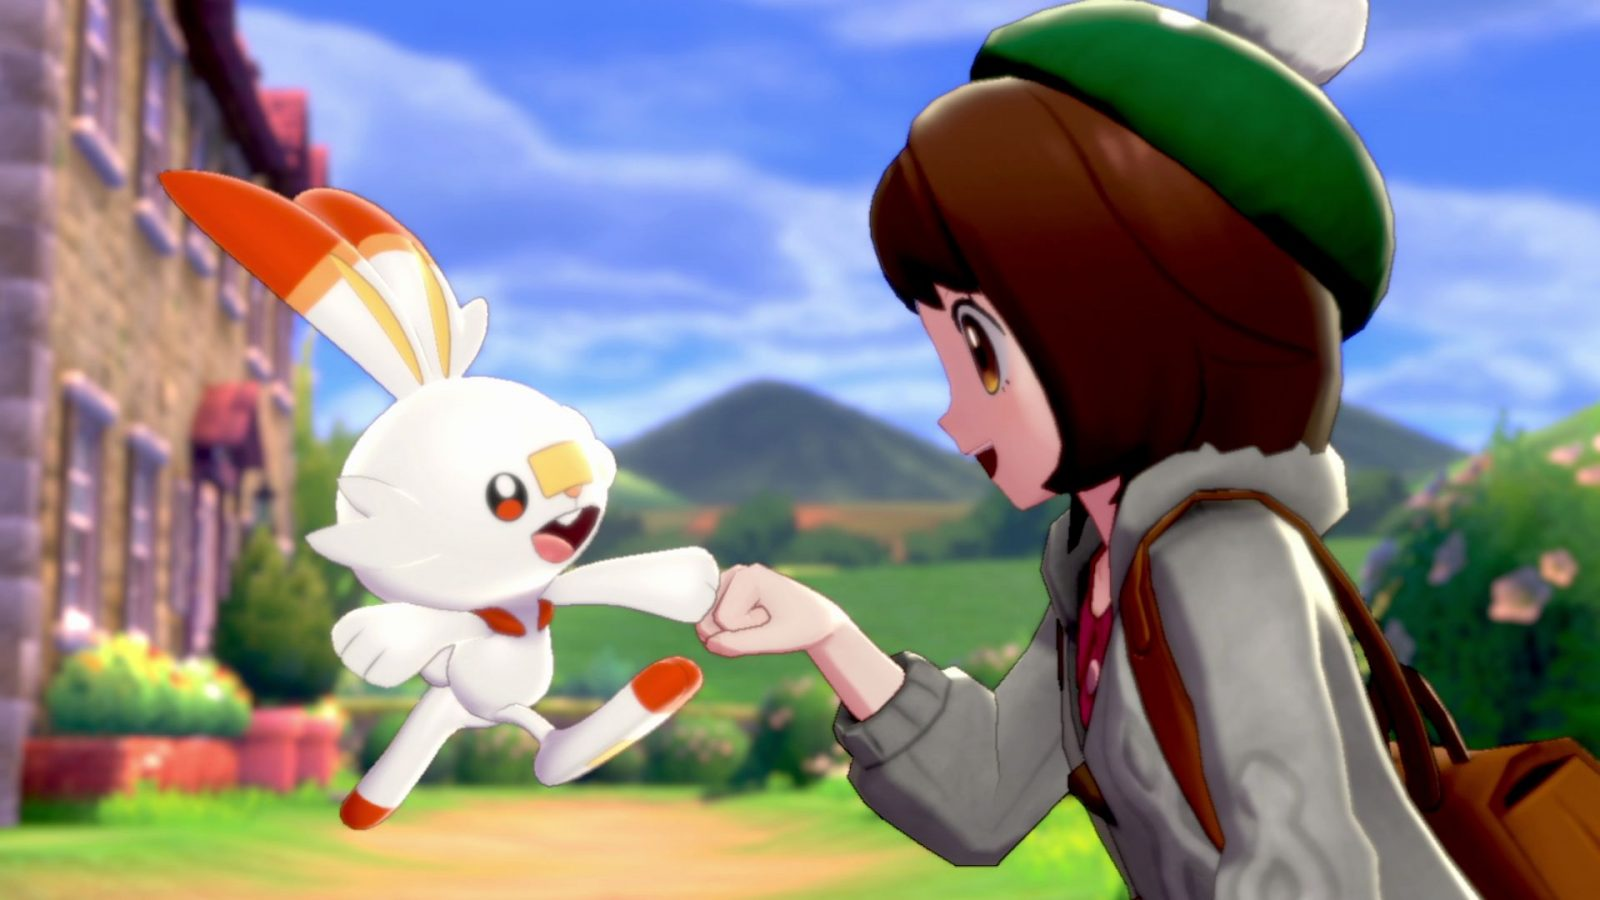 No, Pokemon Sword and Shield is not Using the 3DS Models